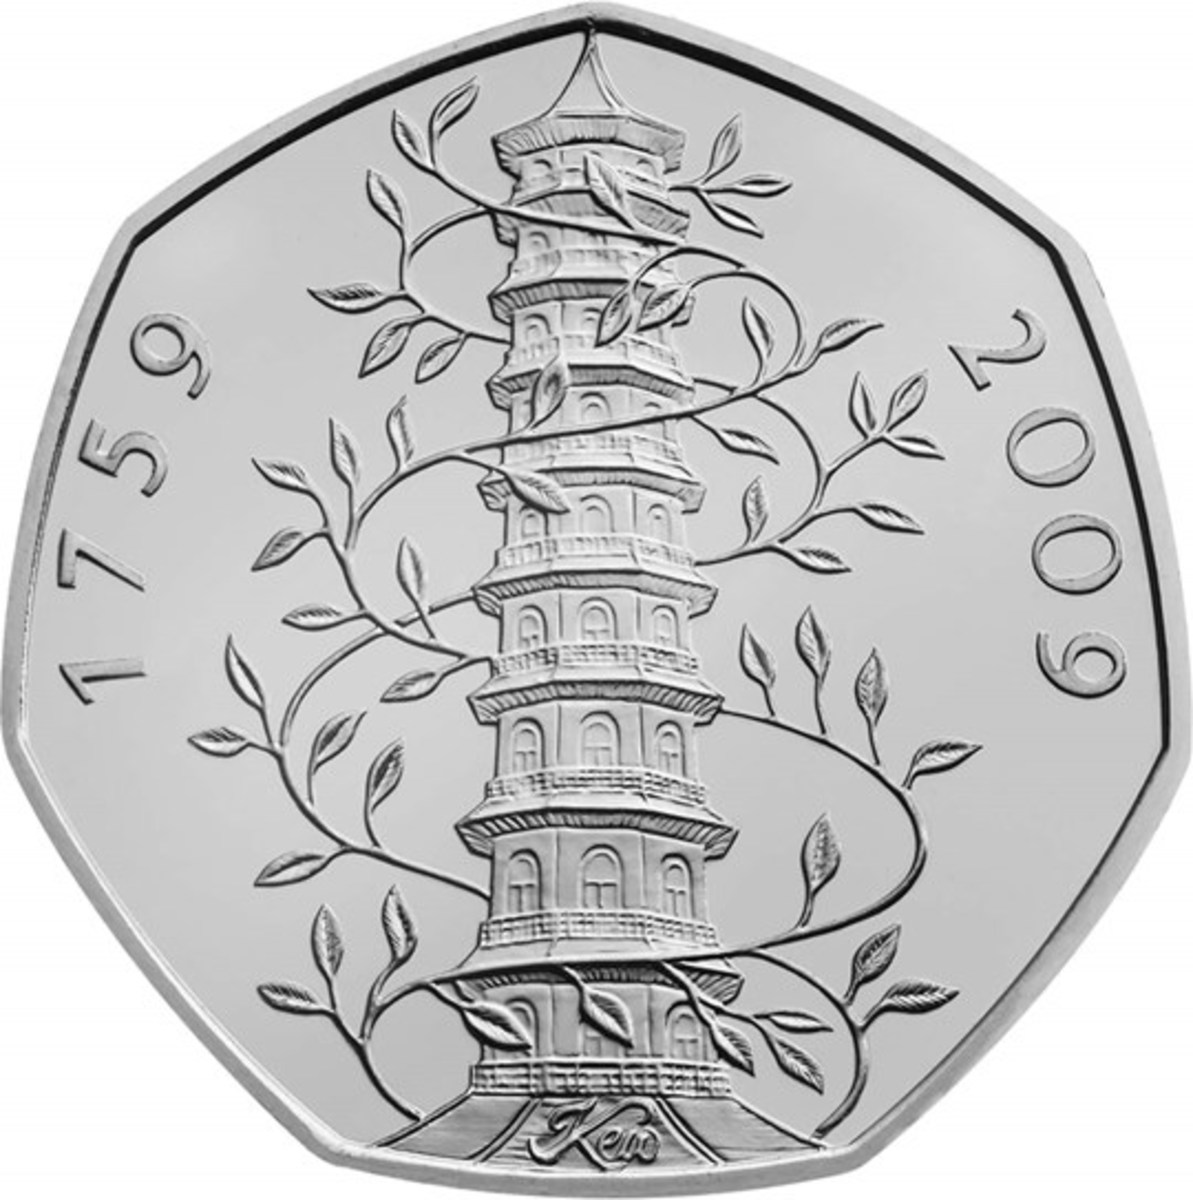 check-your-uk-change